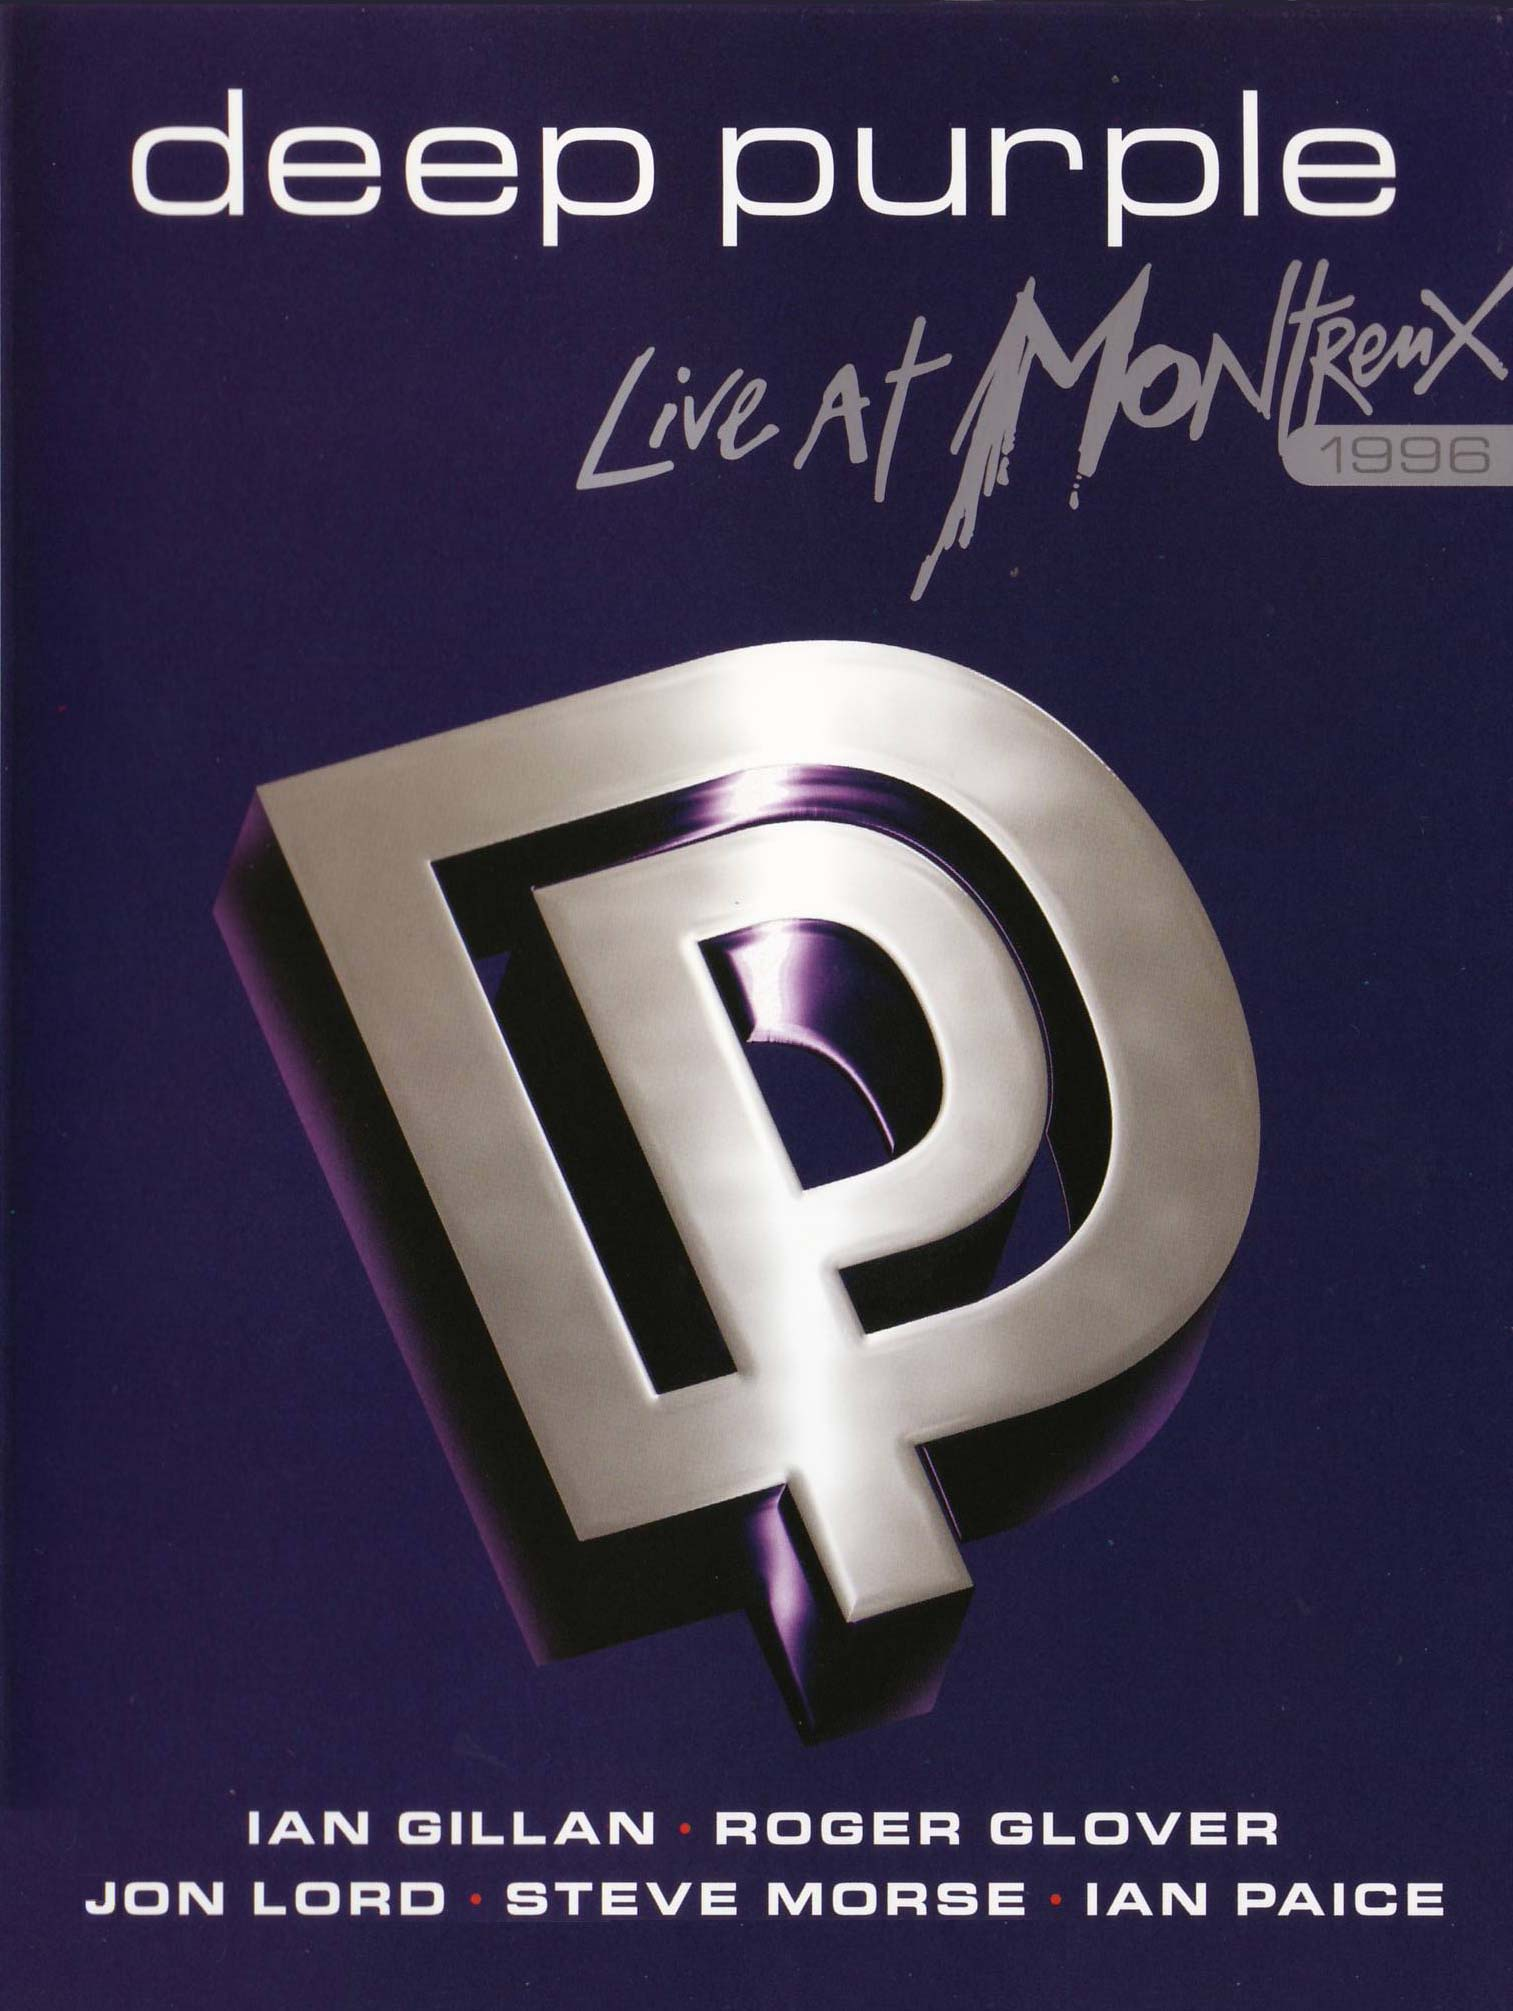 Live at montreux 1996